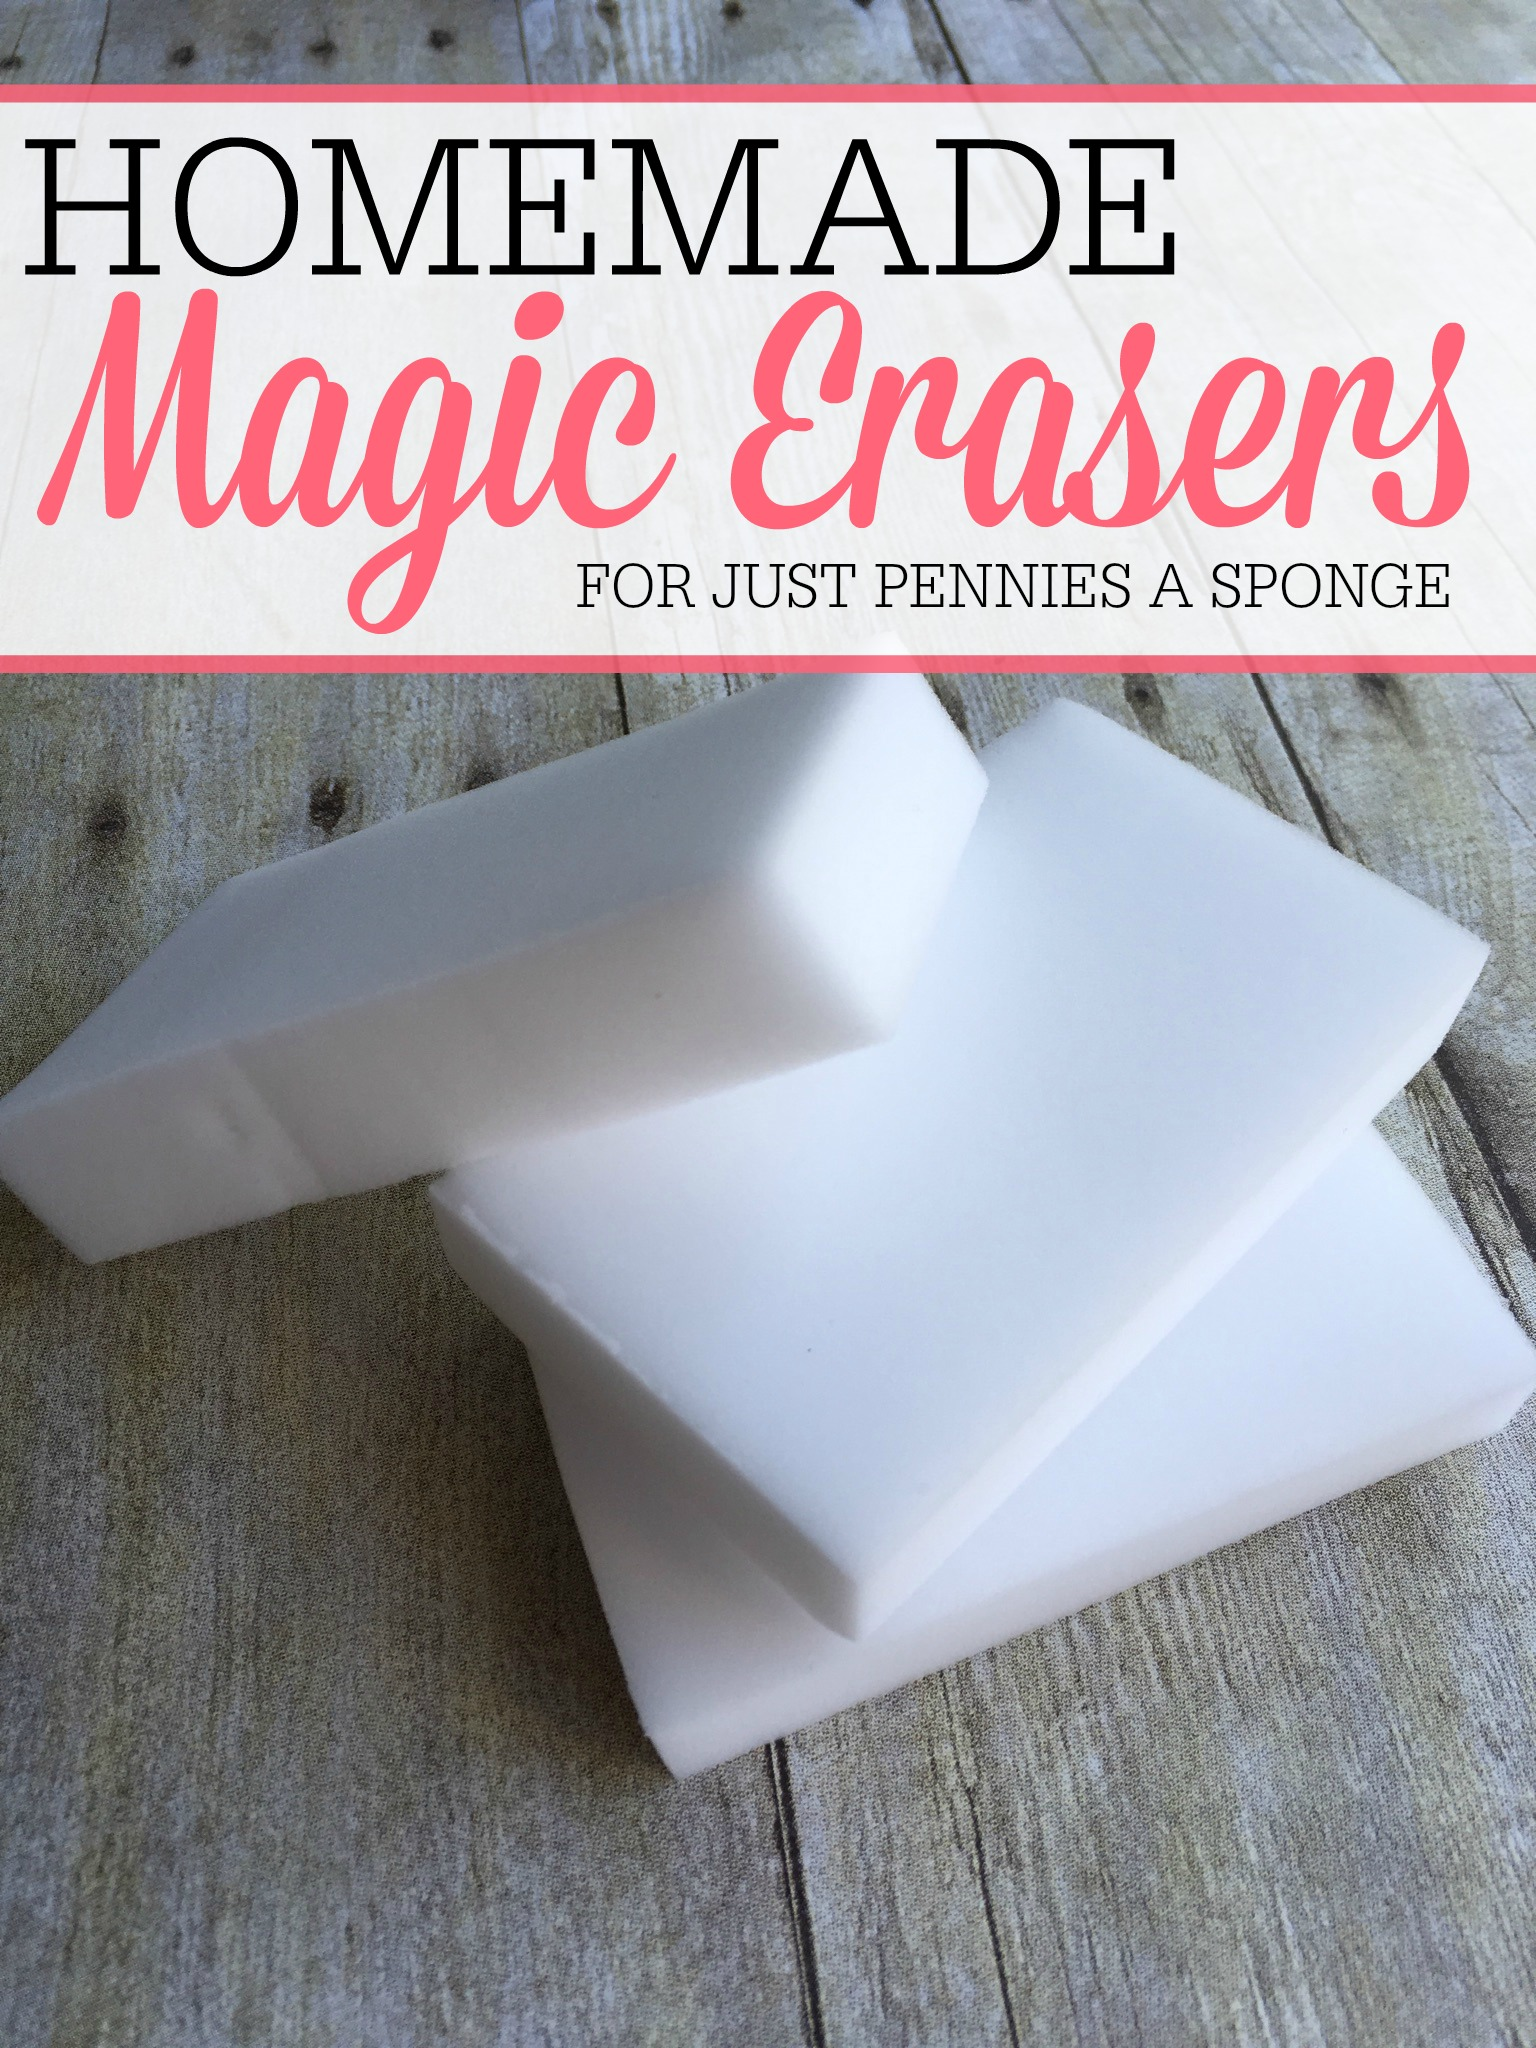 homemade-magic-erasers